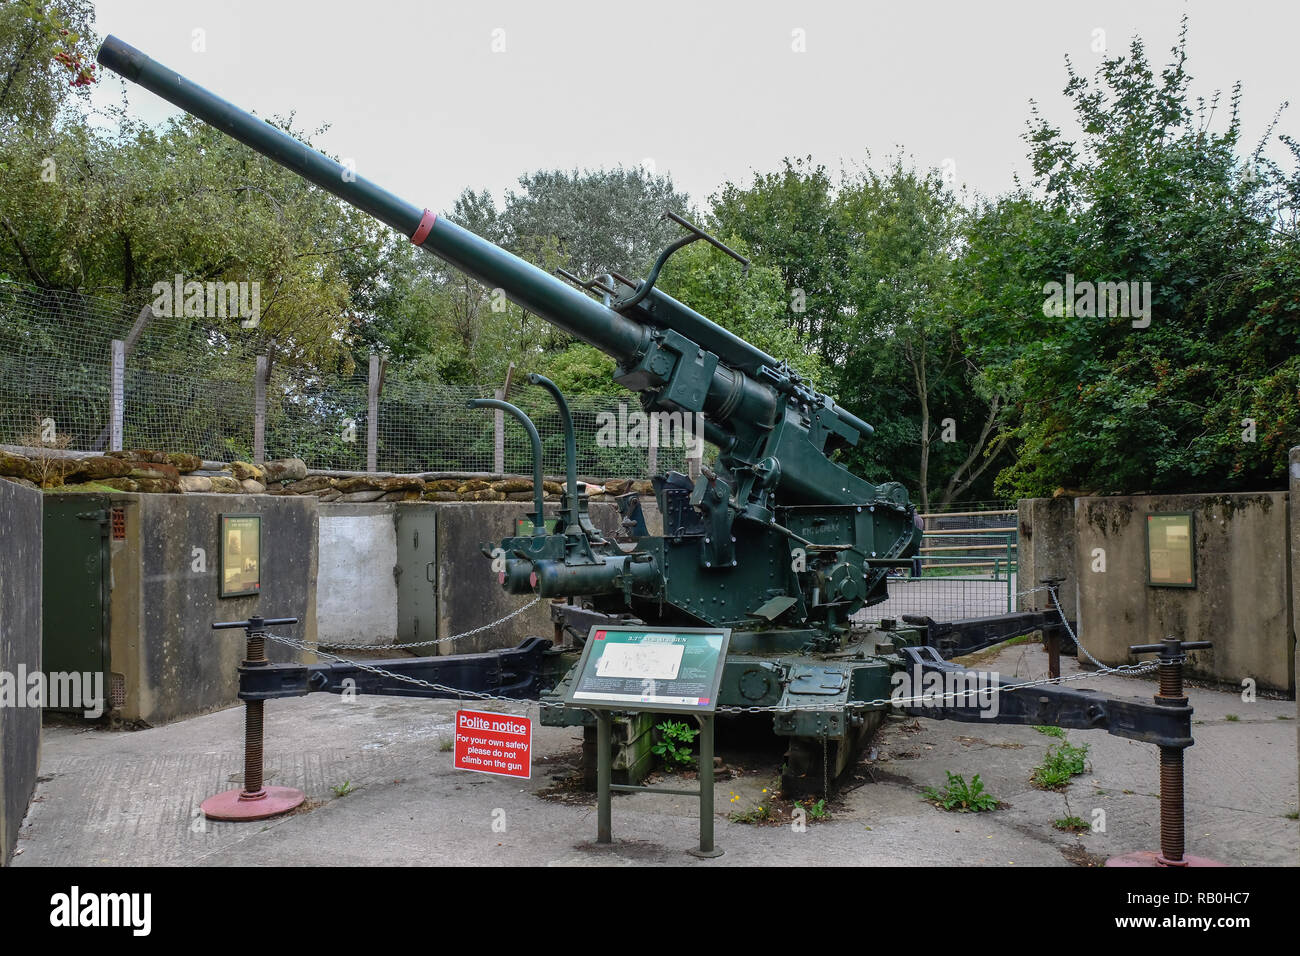 Mudcute, Isle of Dogs, London, UK - August 18, 2018: Second world war ack ack gun emplacement near the mudcute farm in east London. - Stock Image